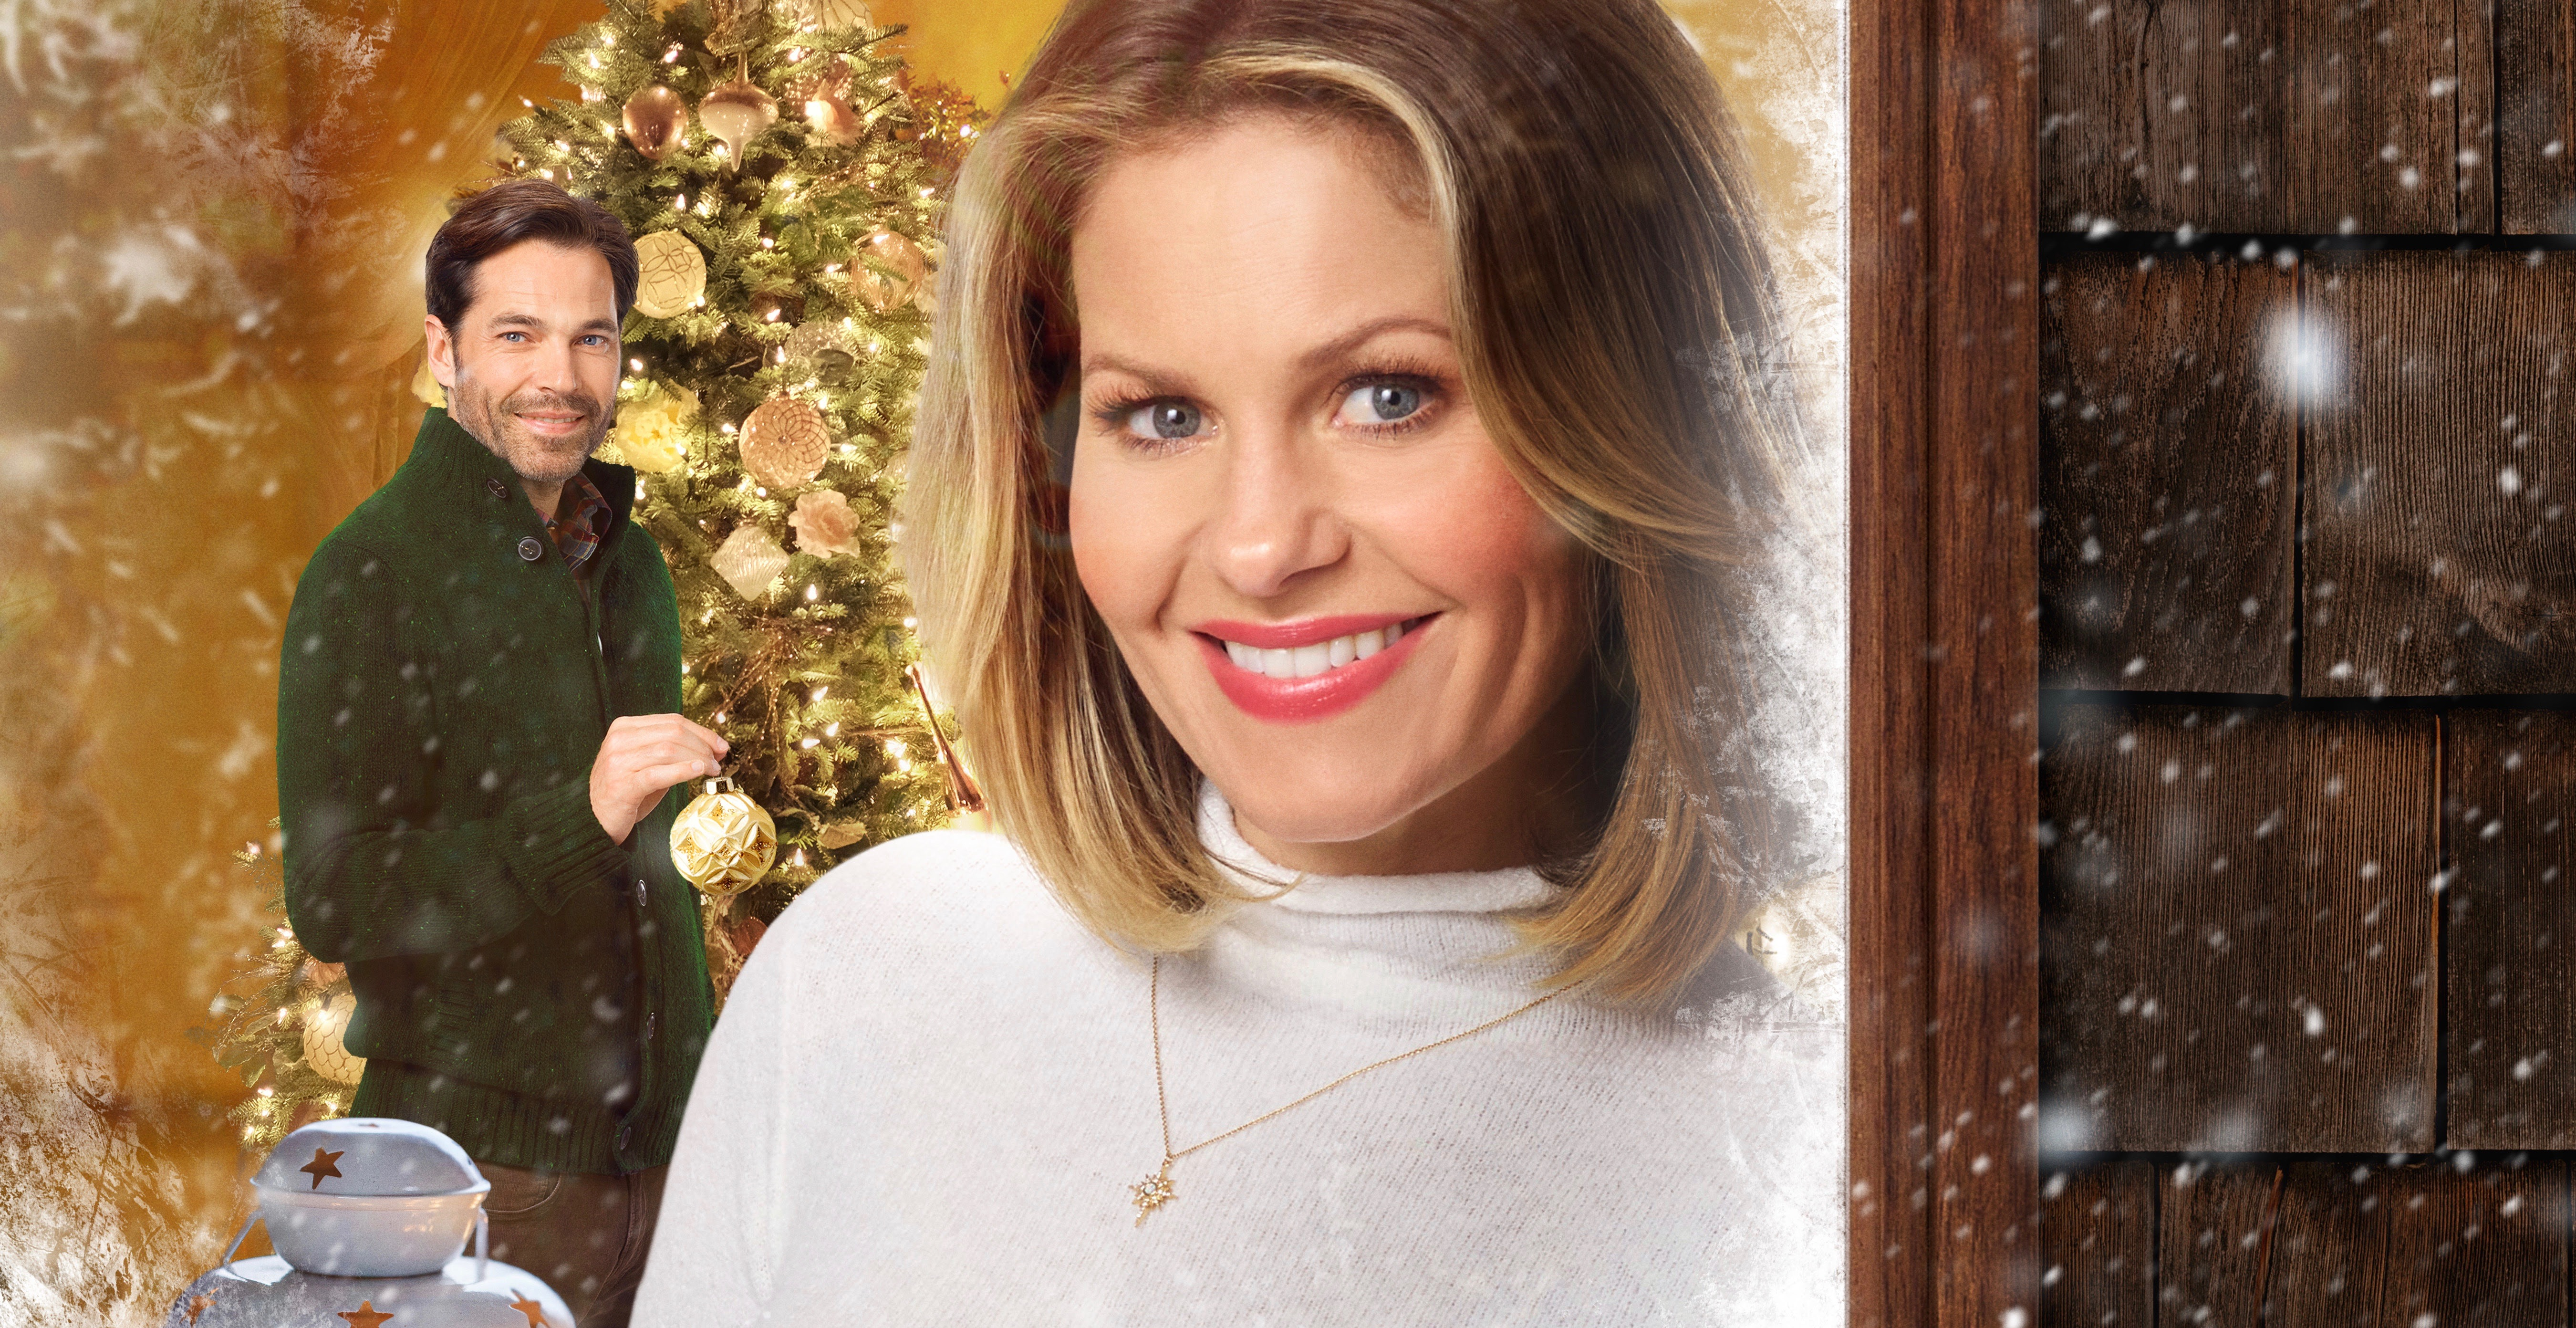 The Hallmark Channel's Christmas movies start today (yes, today)